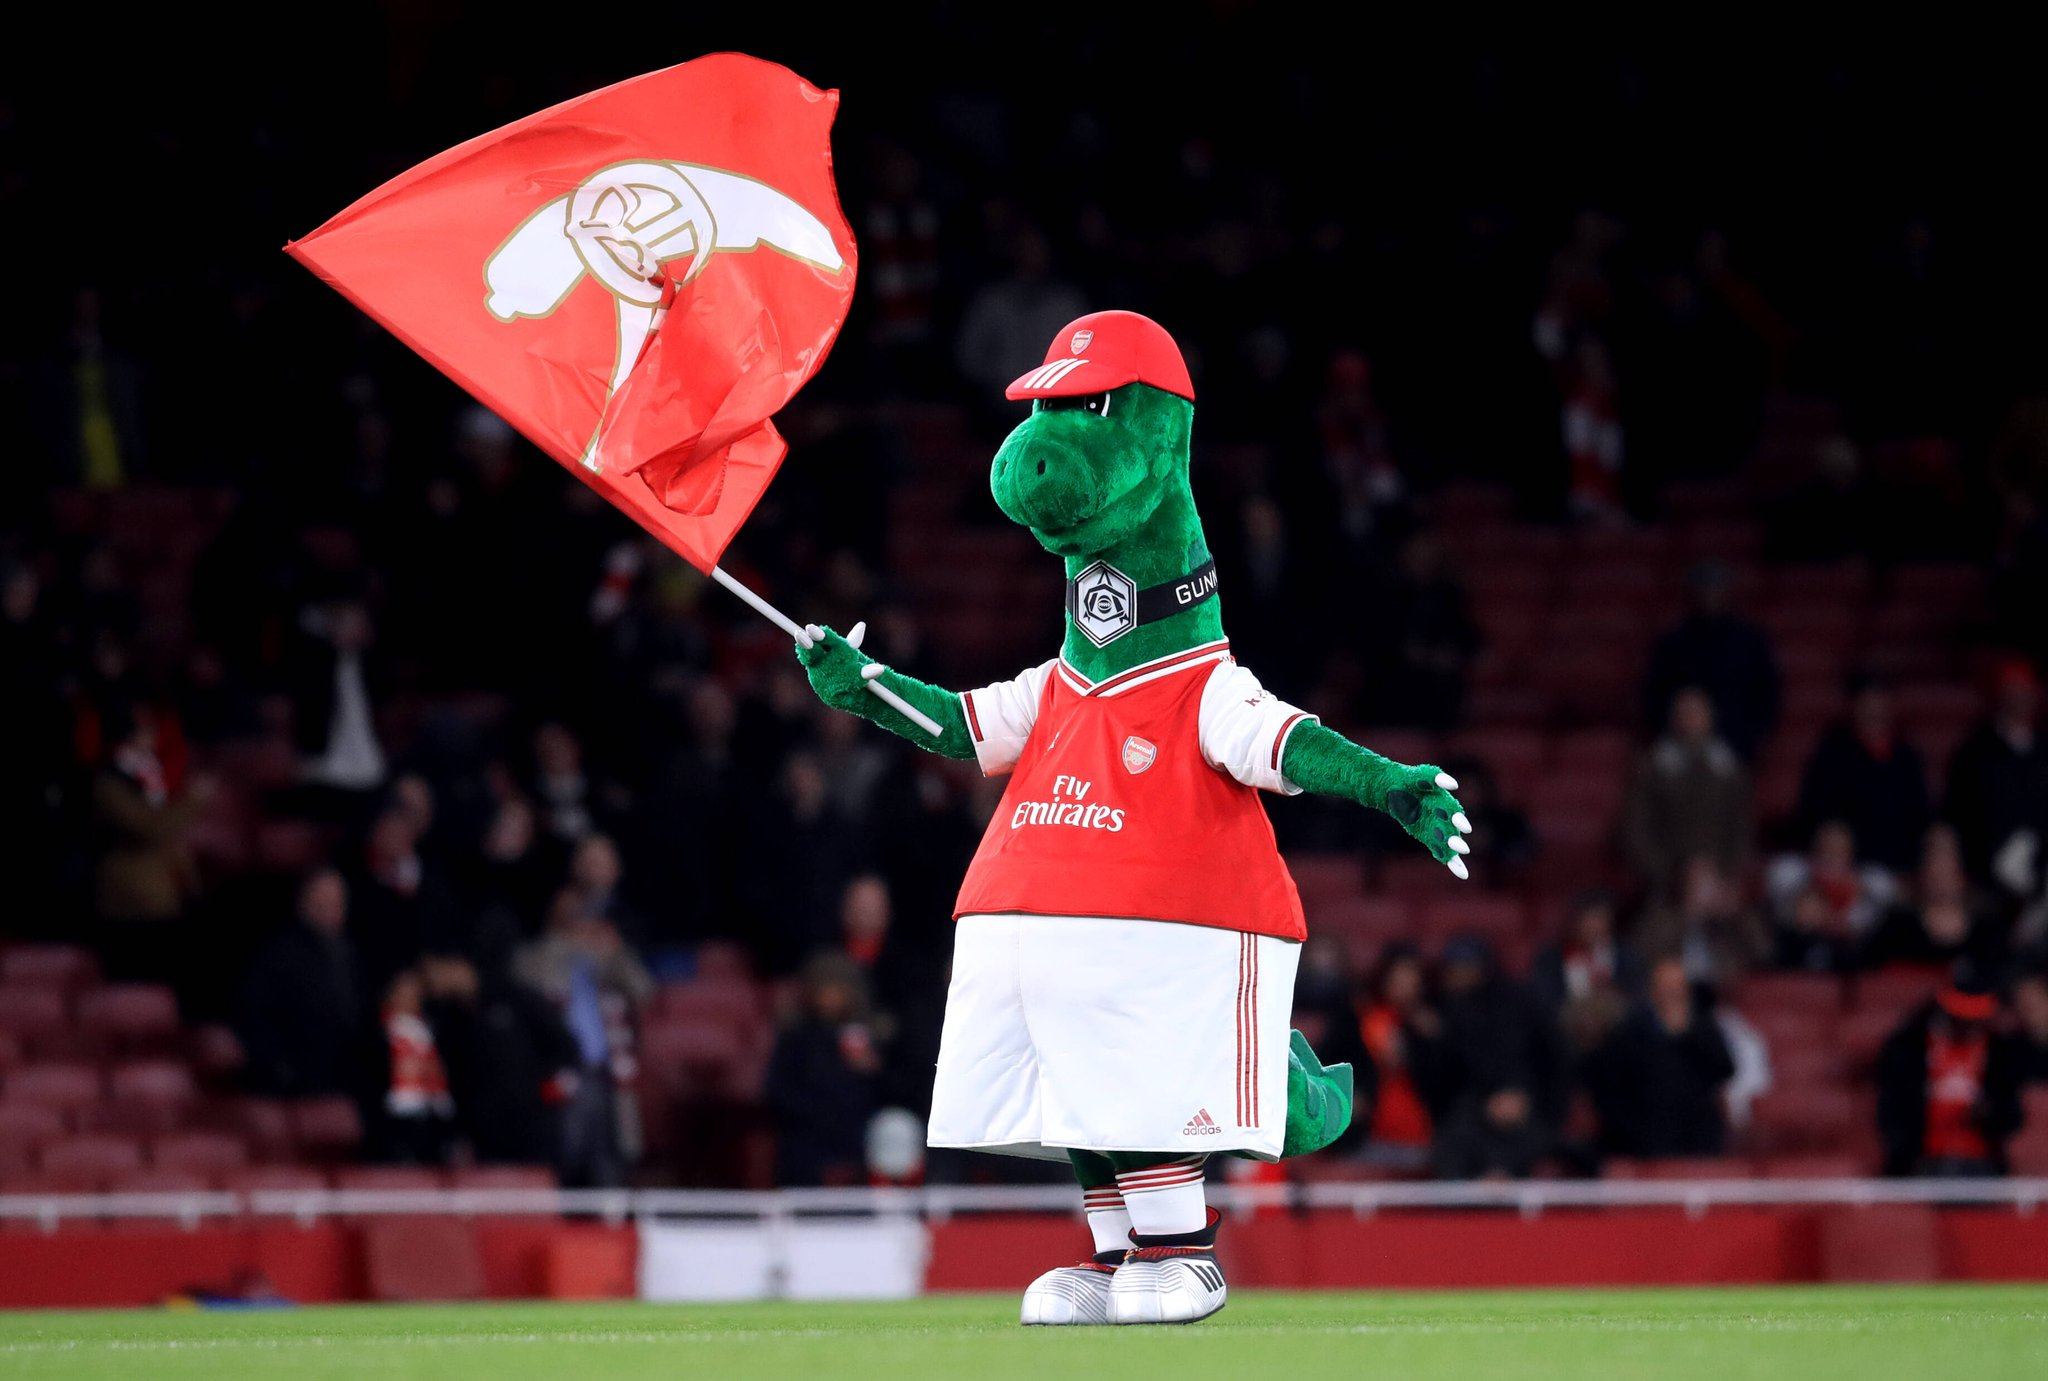 GUNNERSAURUS RETURNS TO ARSENAL